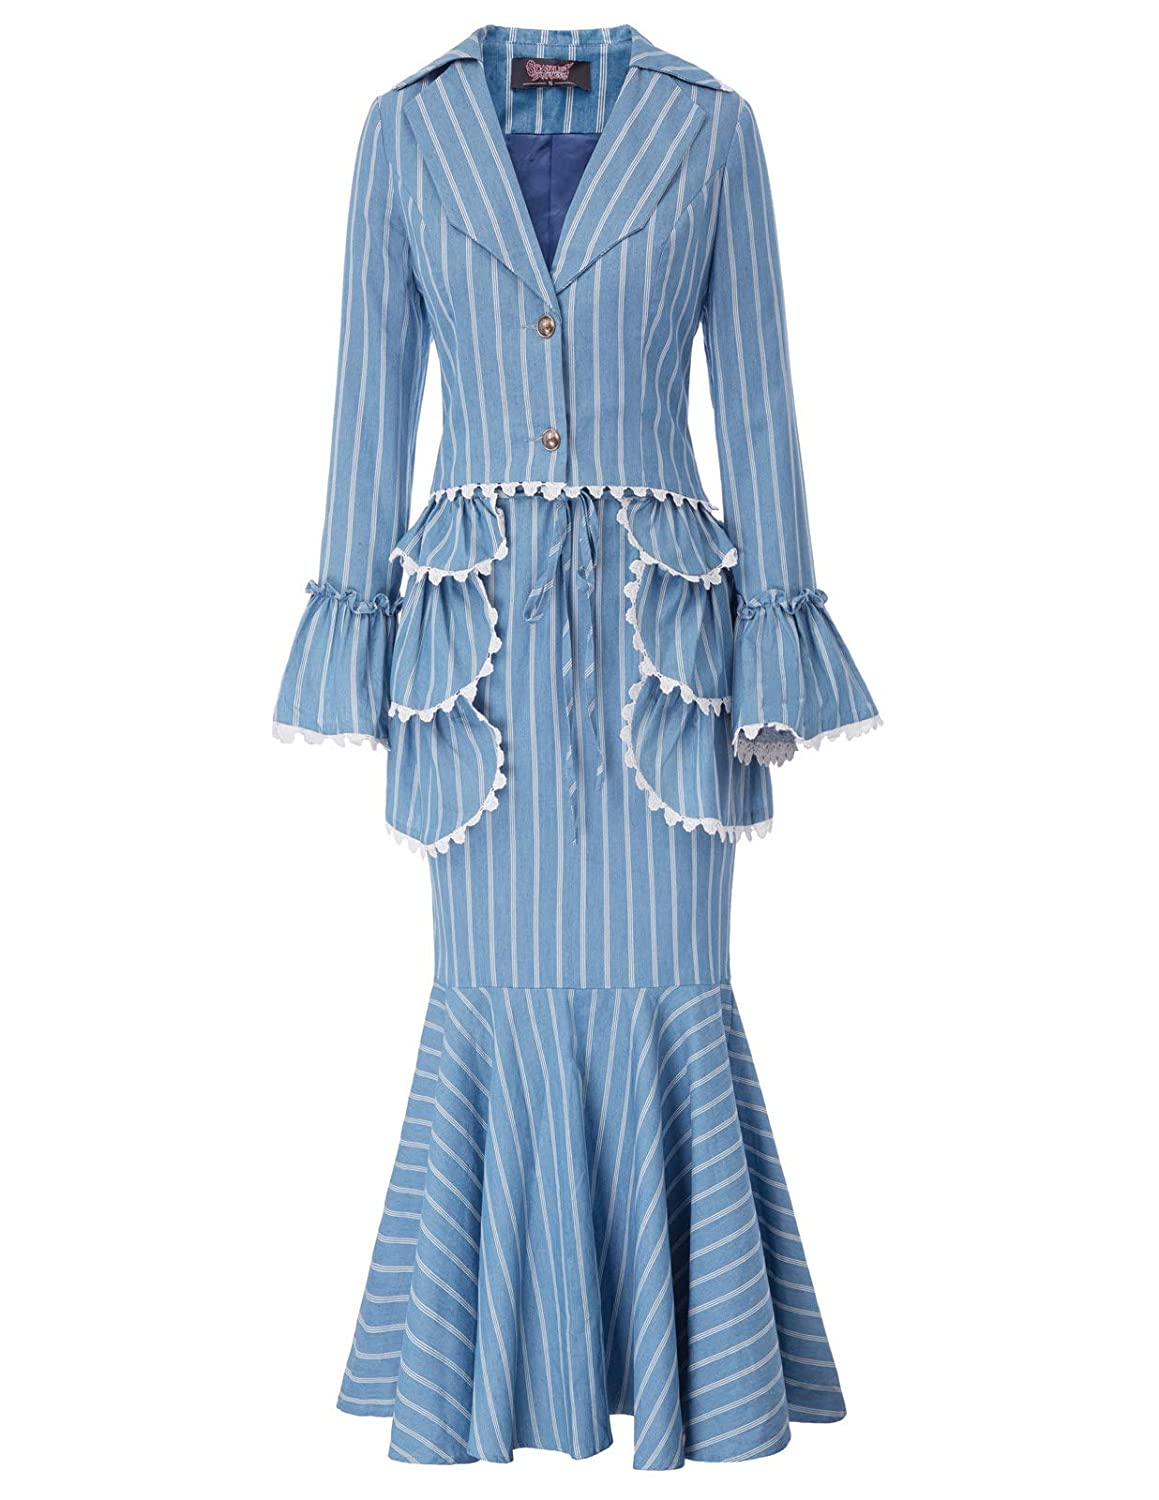 Edwardian Ladies Clothing – 1900, 1910s, Titanic Era Women 3pcs Set Vintage Victorian Costume Edwardian Suit Coat+Skirt+Apron $59.99 AT vintagedancer.com